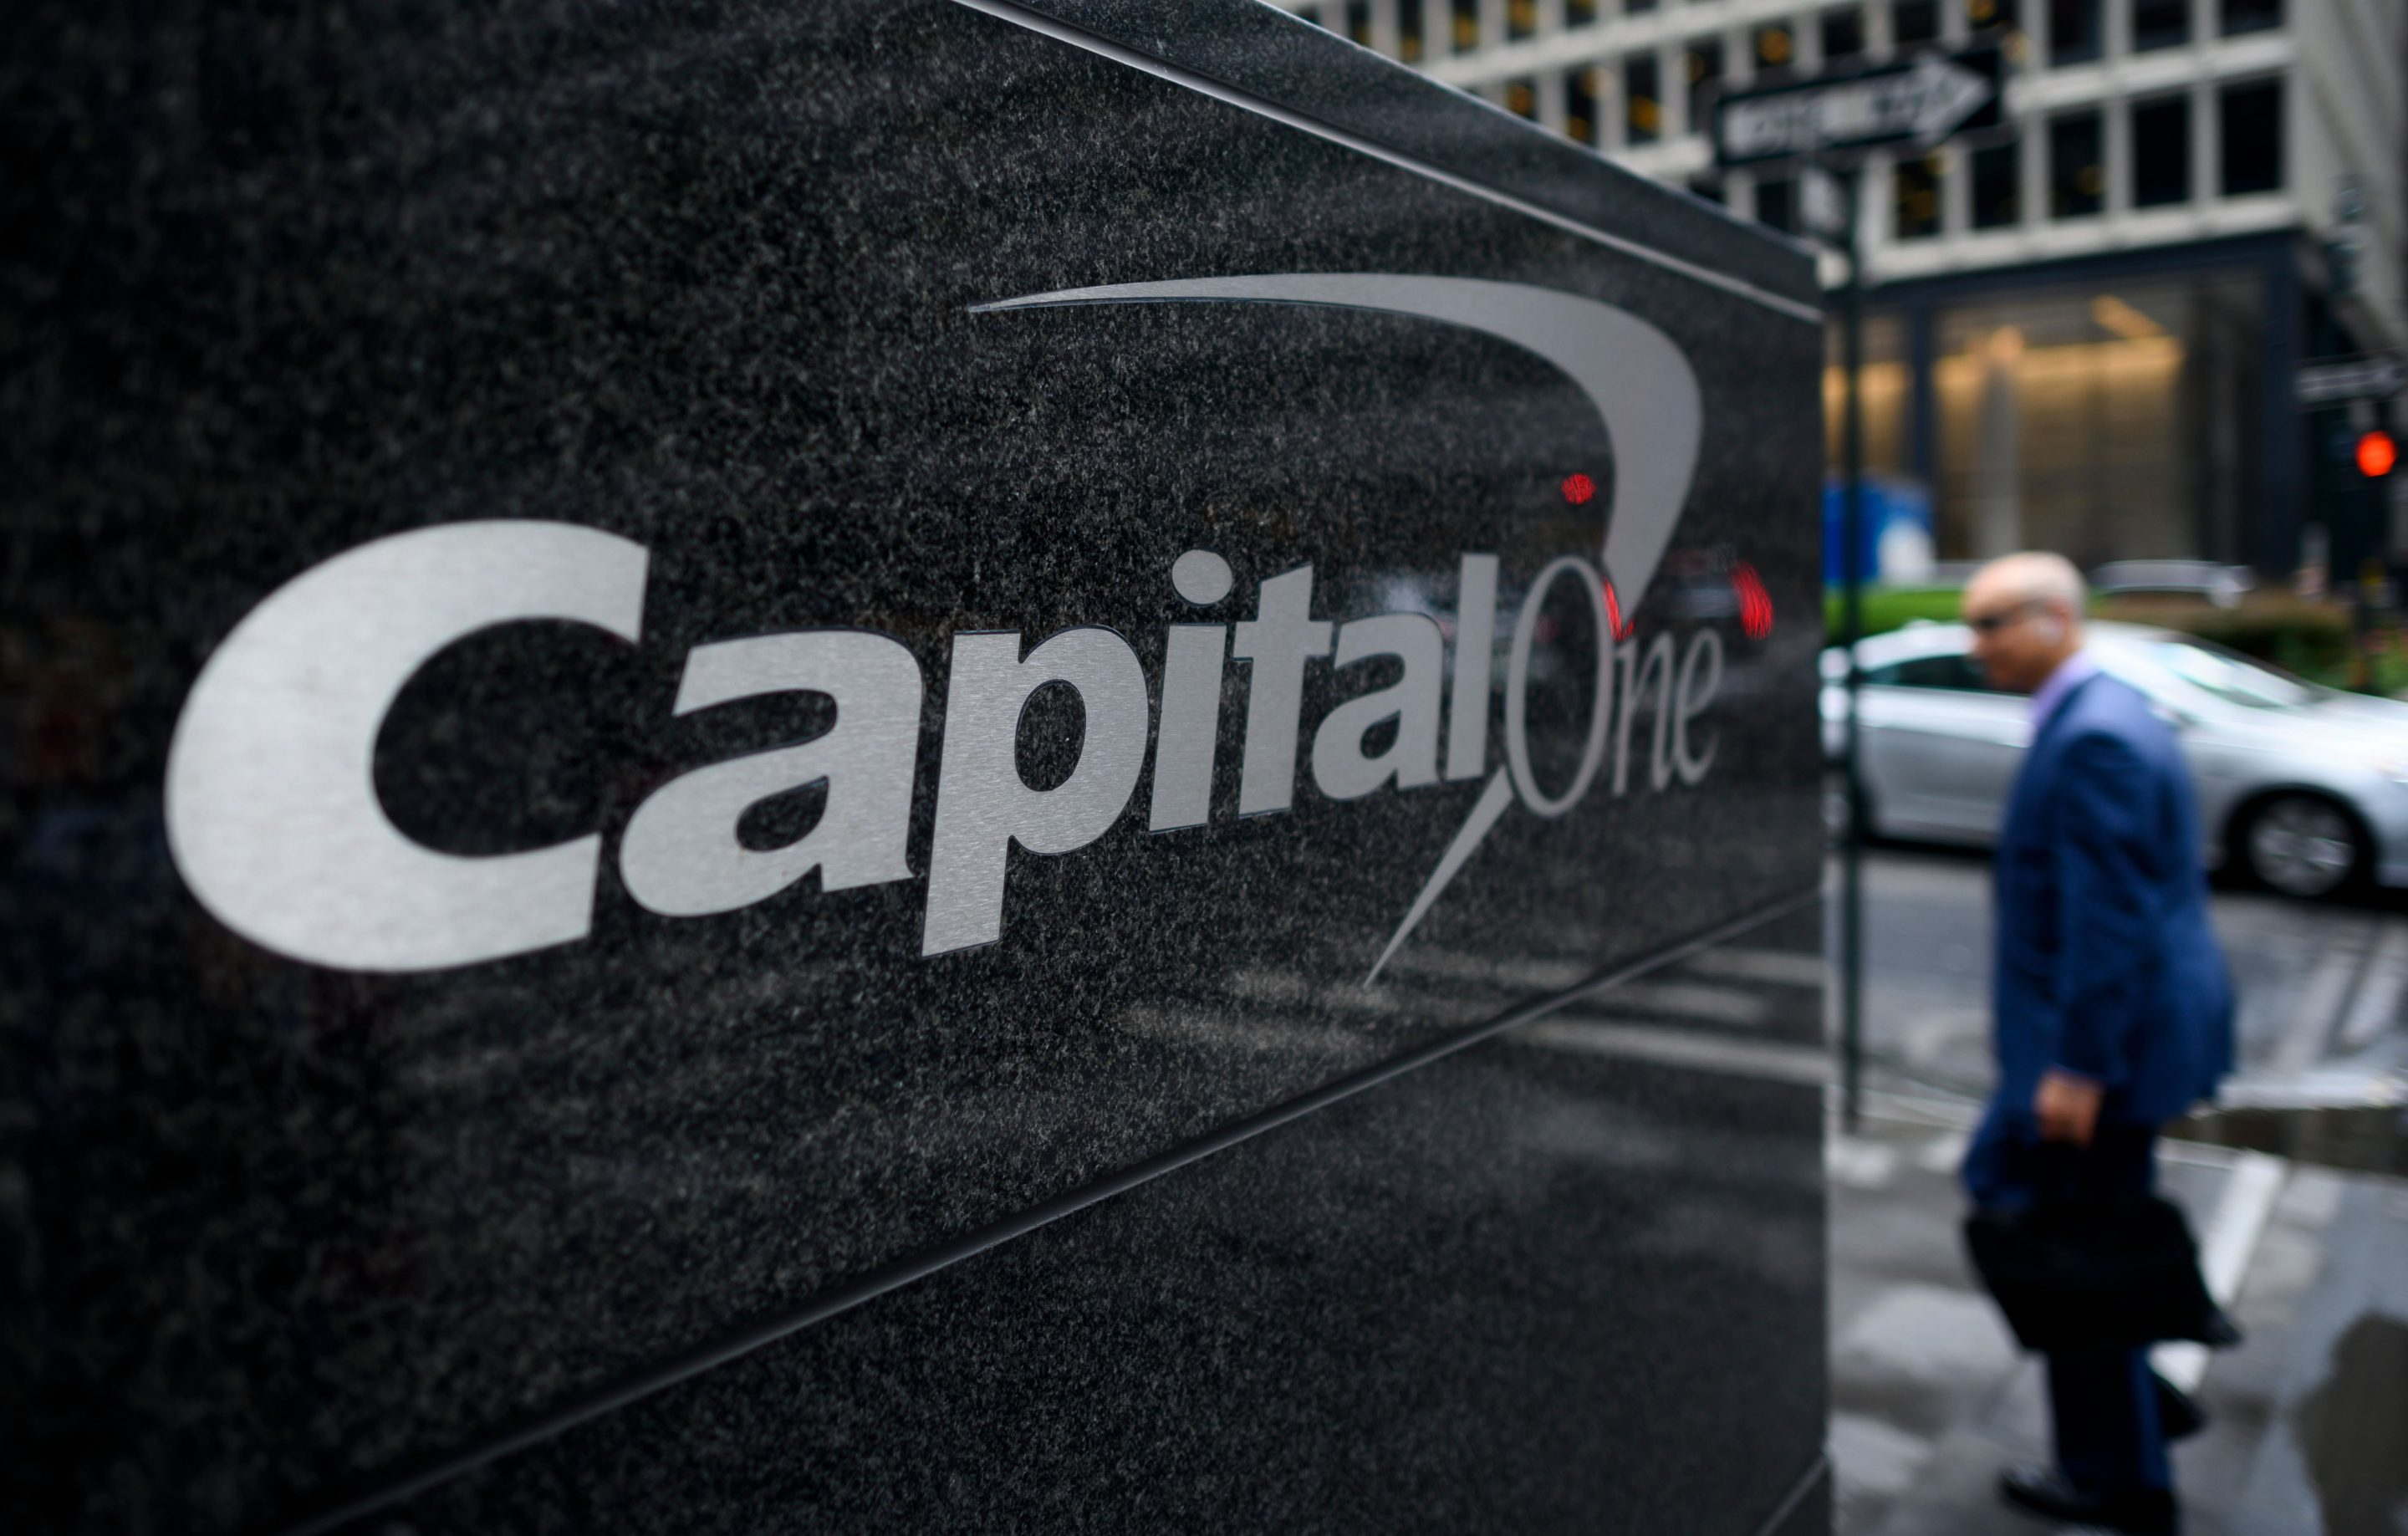 Capitol One hacking case